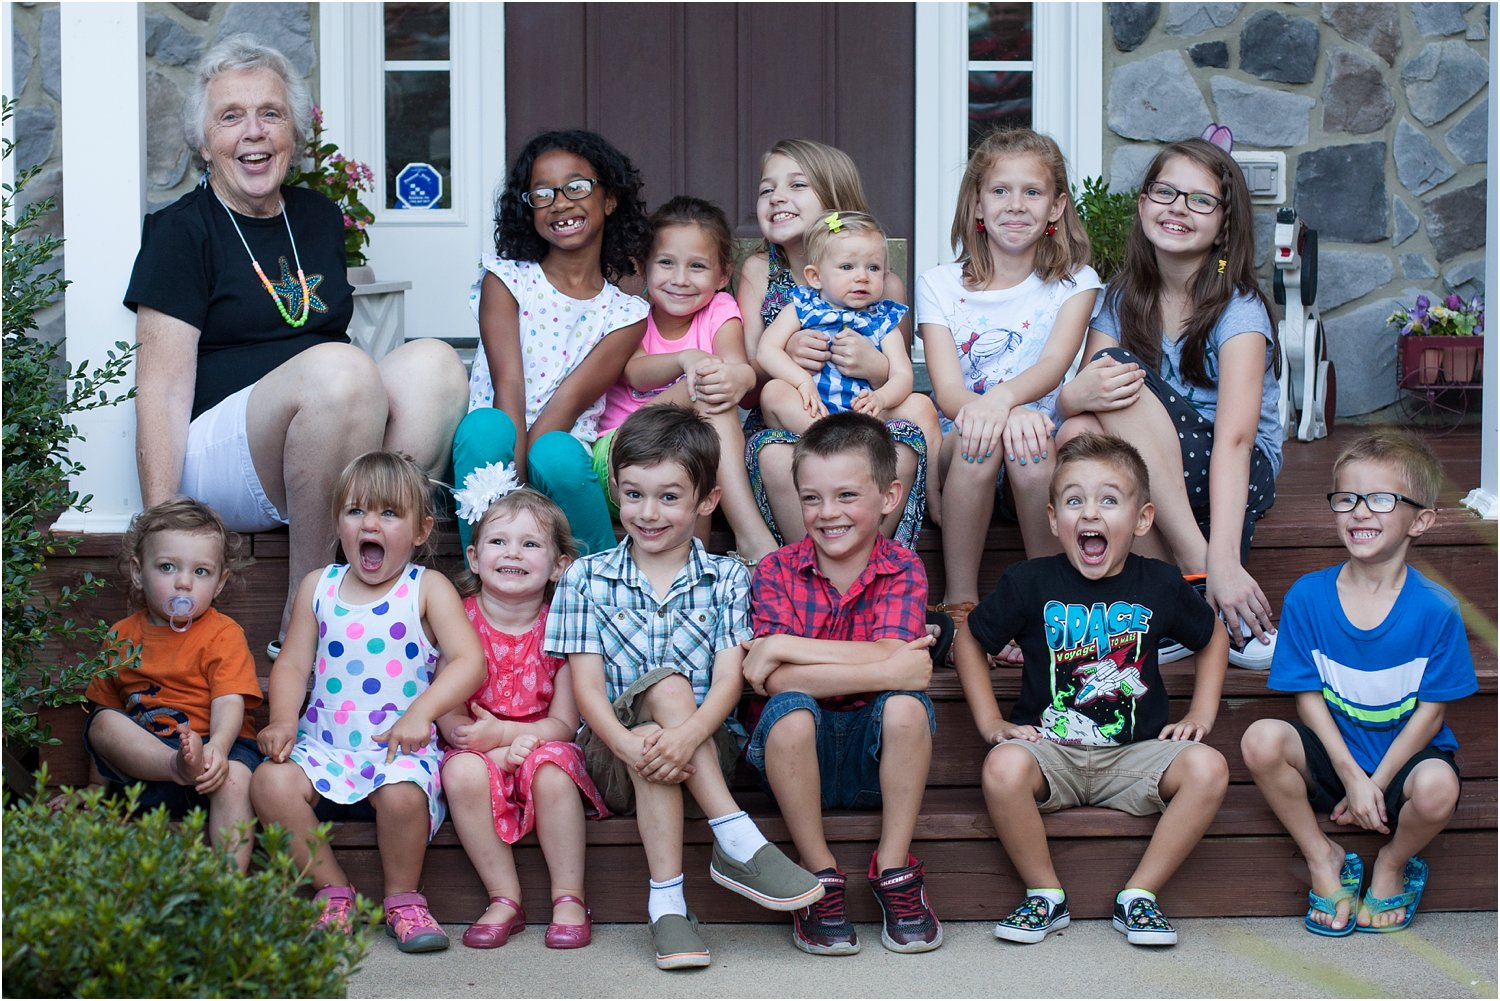 My Grandma with 13 of her 14 great-grandchildren